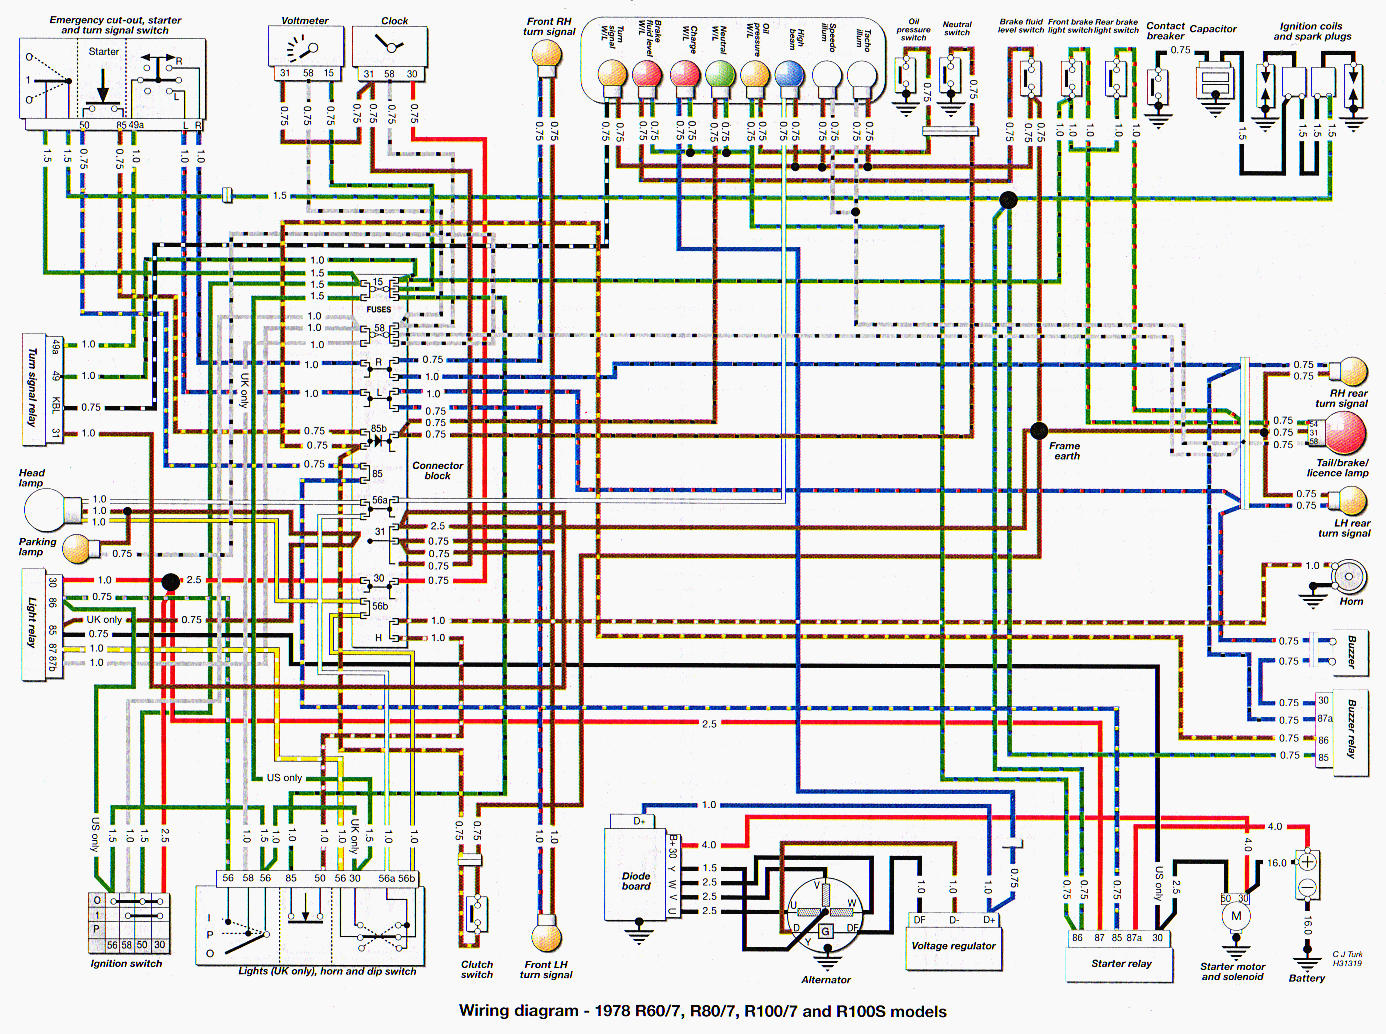 wiring diagram bmw r1200r wiring diagrams user BMW Schematic Diagram